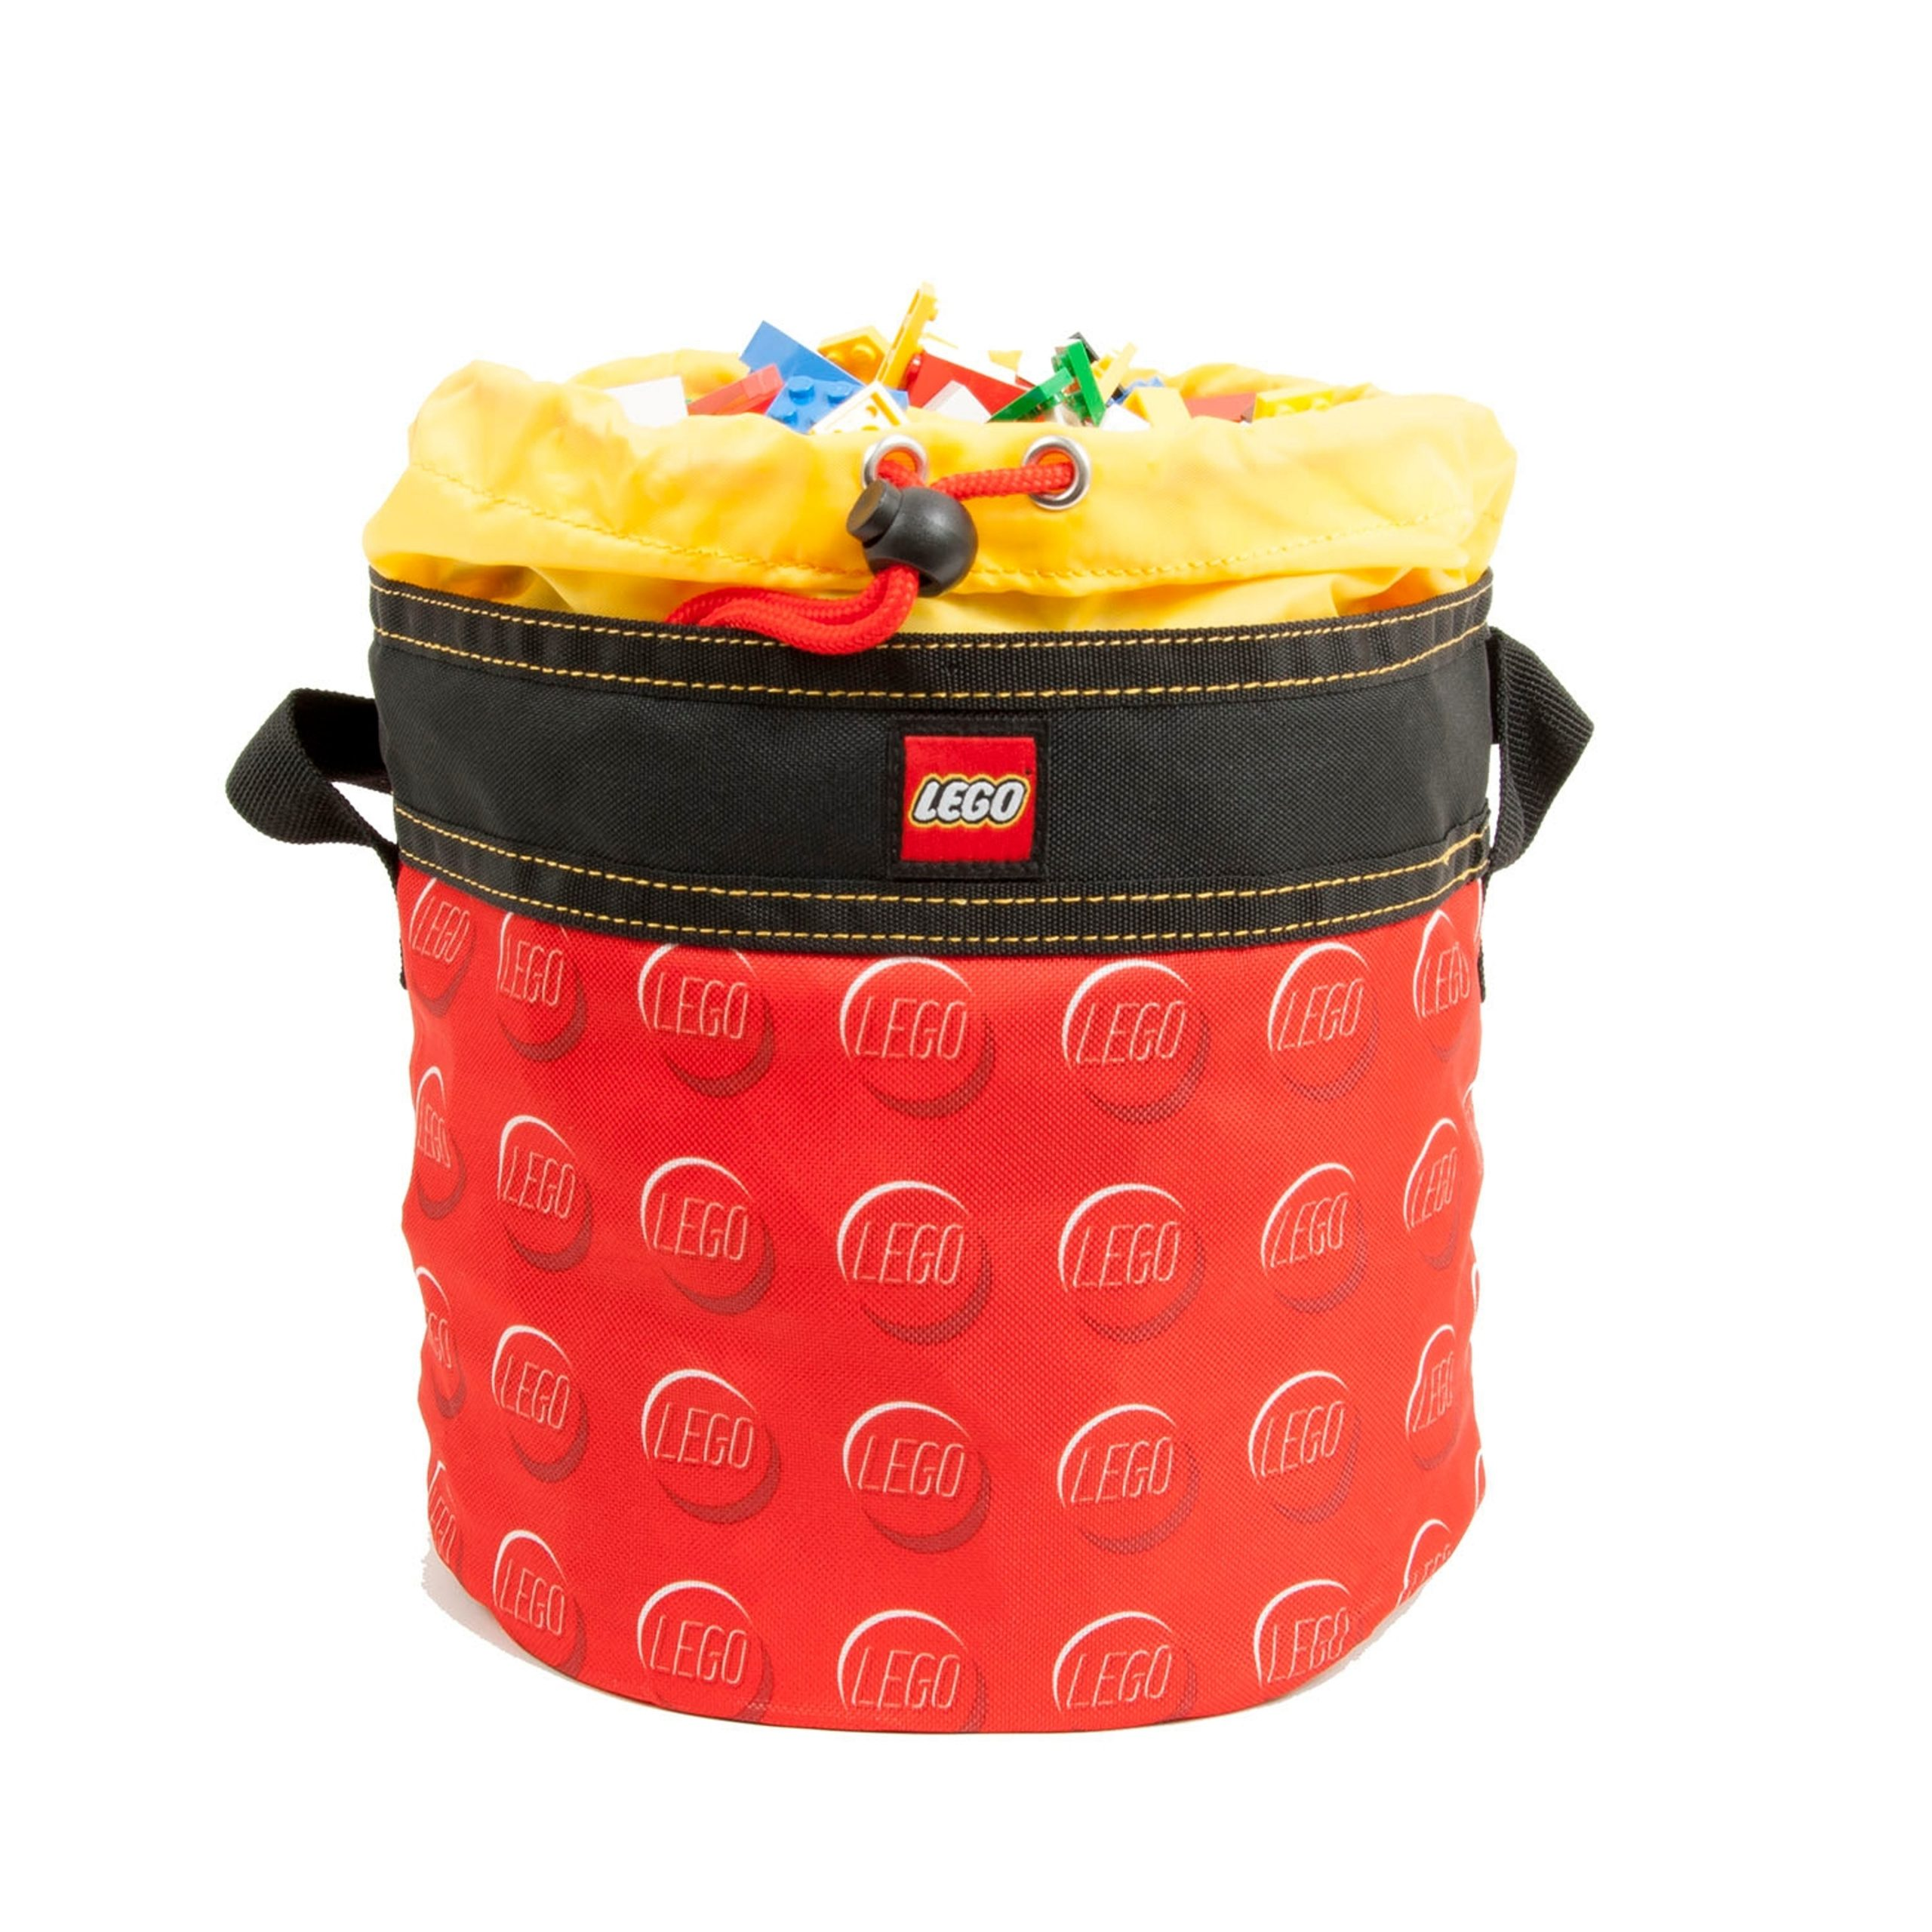 lego 5005353 red cinch bucket scaled